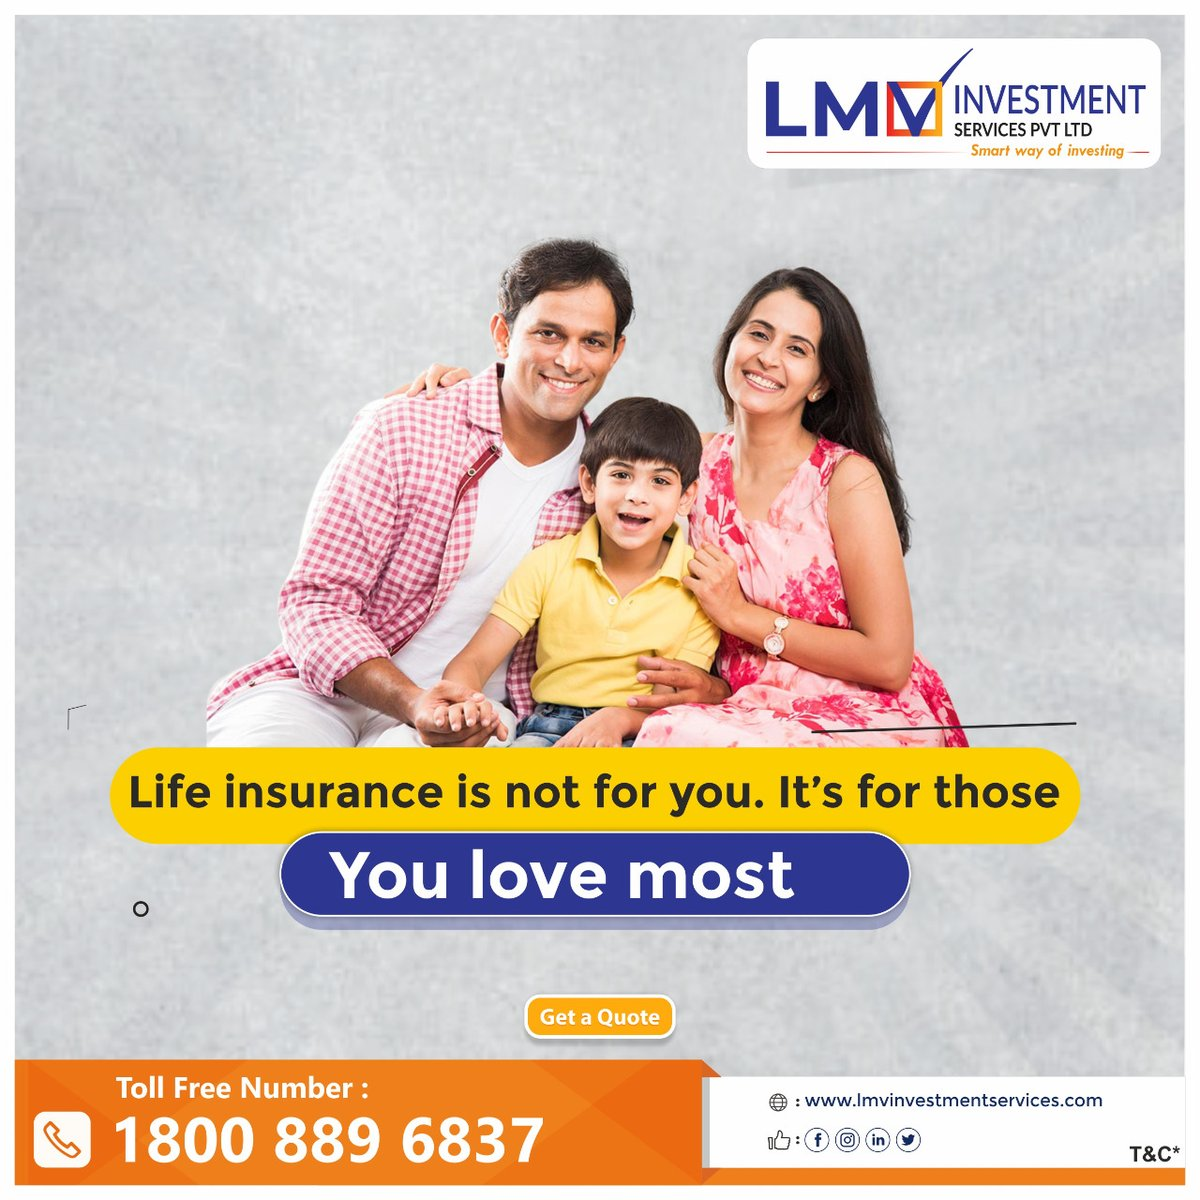 Prevent yourself from miseries by SAFELY relying on insurance plans from #LMV visit us:  . . . . . #covid19 #coronavirus #stayhome #staysafe #stayhealthy #lifeinsuranceagent #LMVFS #Lifeinsurancepolicies #insurancelife #termlifeinsurance #insurancecompany